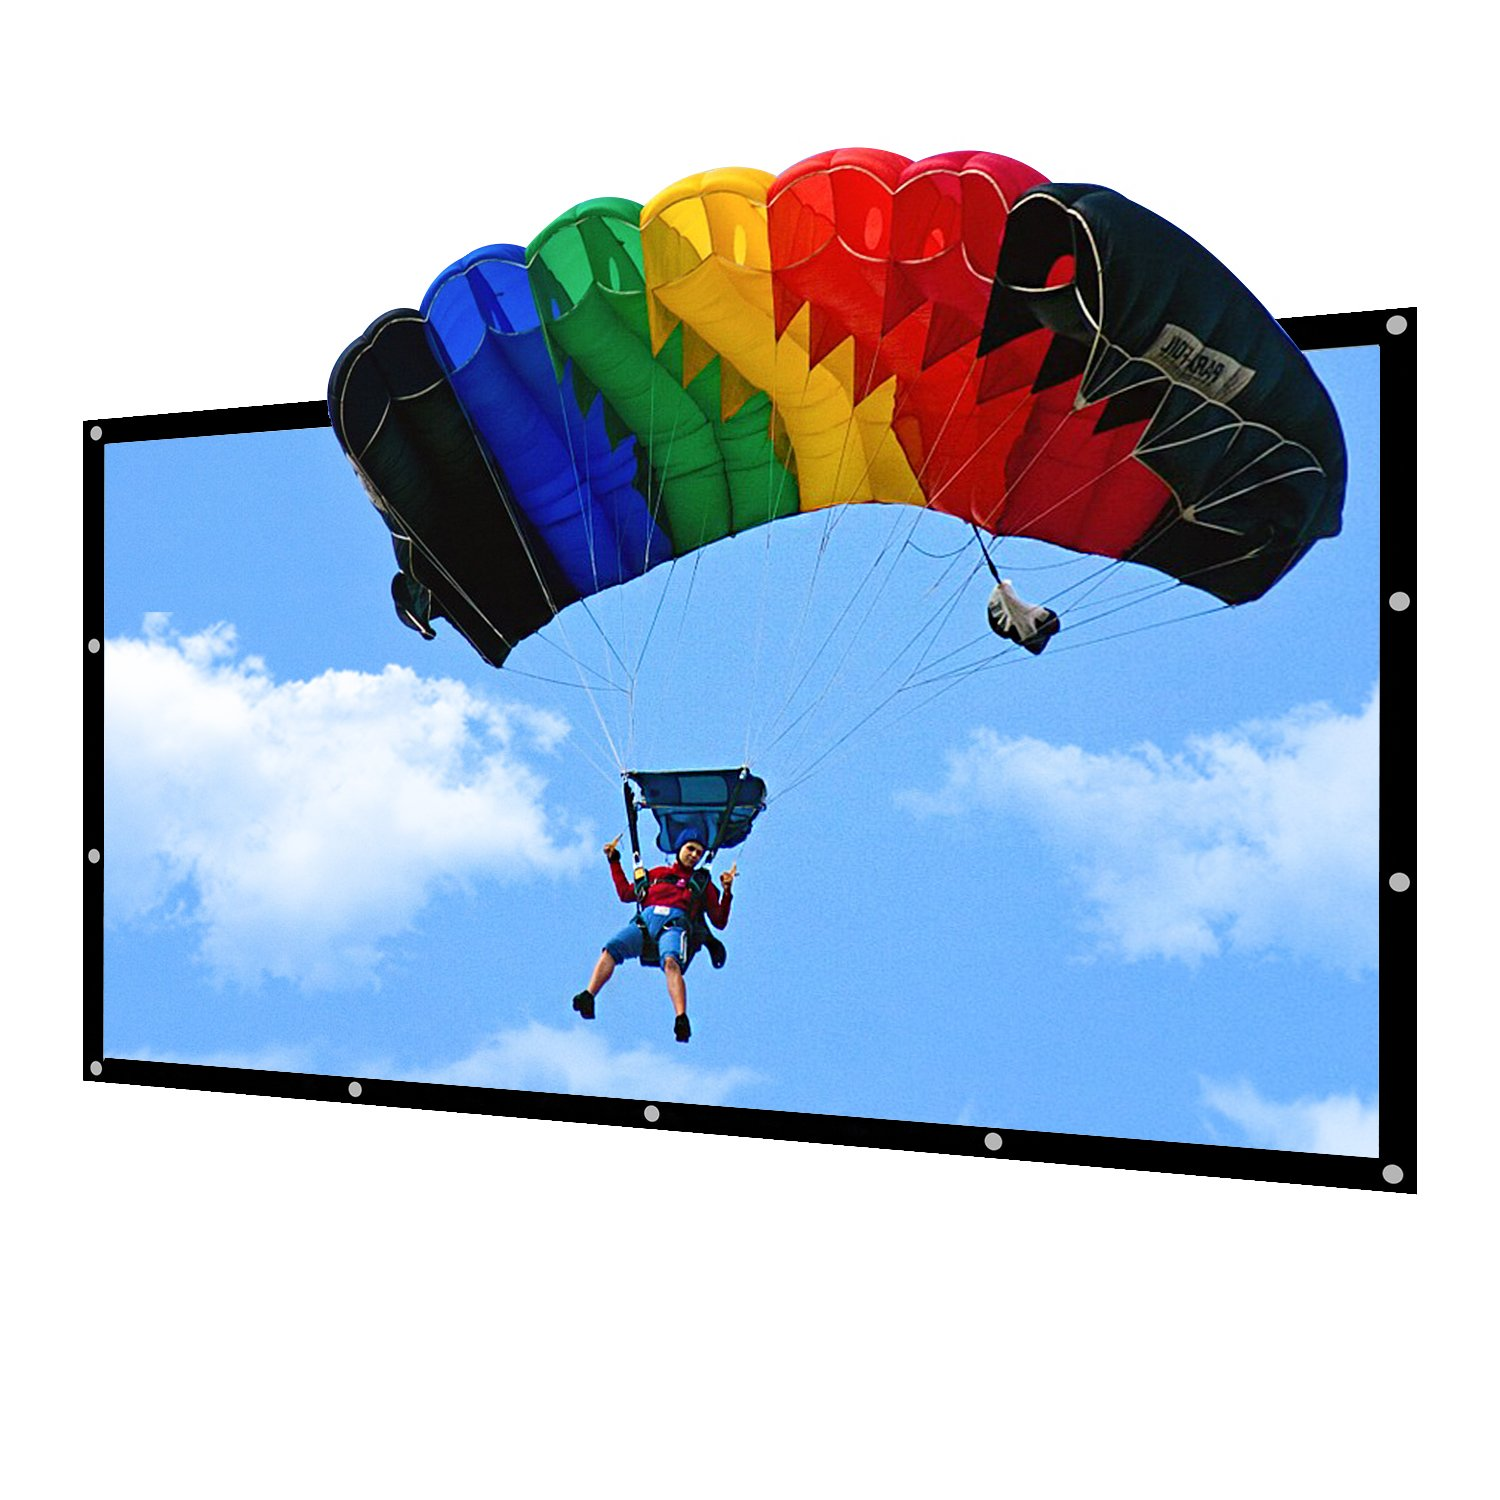 Portable Projector Screen Indoor Outdoor Lightweight Folding Movies Screen Wrinkle Free 100 inch HD Projection Screen 3D Rear Front Projection for Home Theater Video Film (100inch) NIERBO PSP100C1